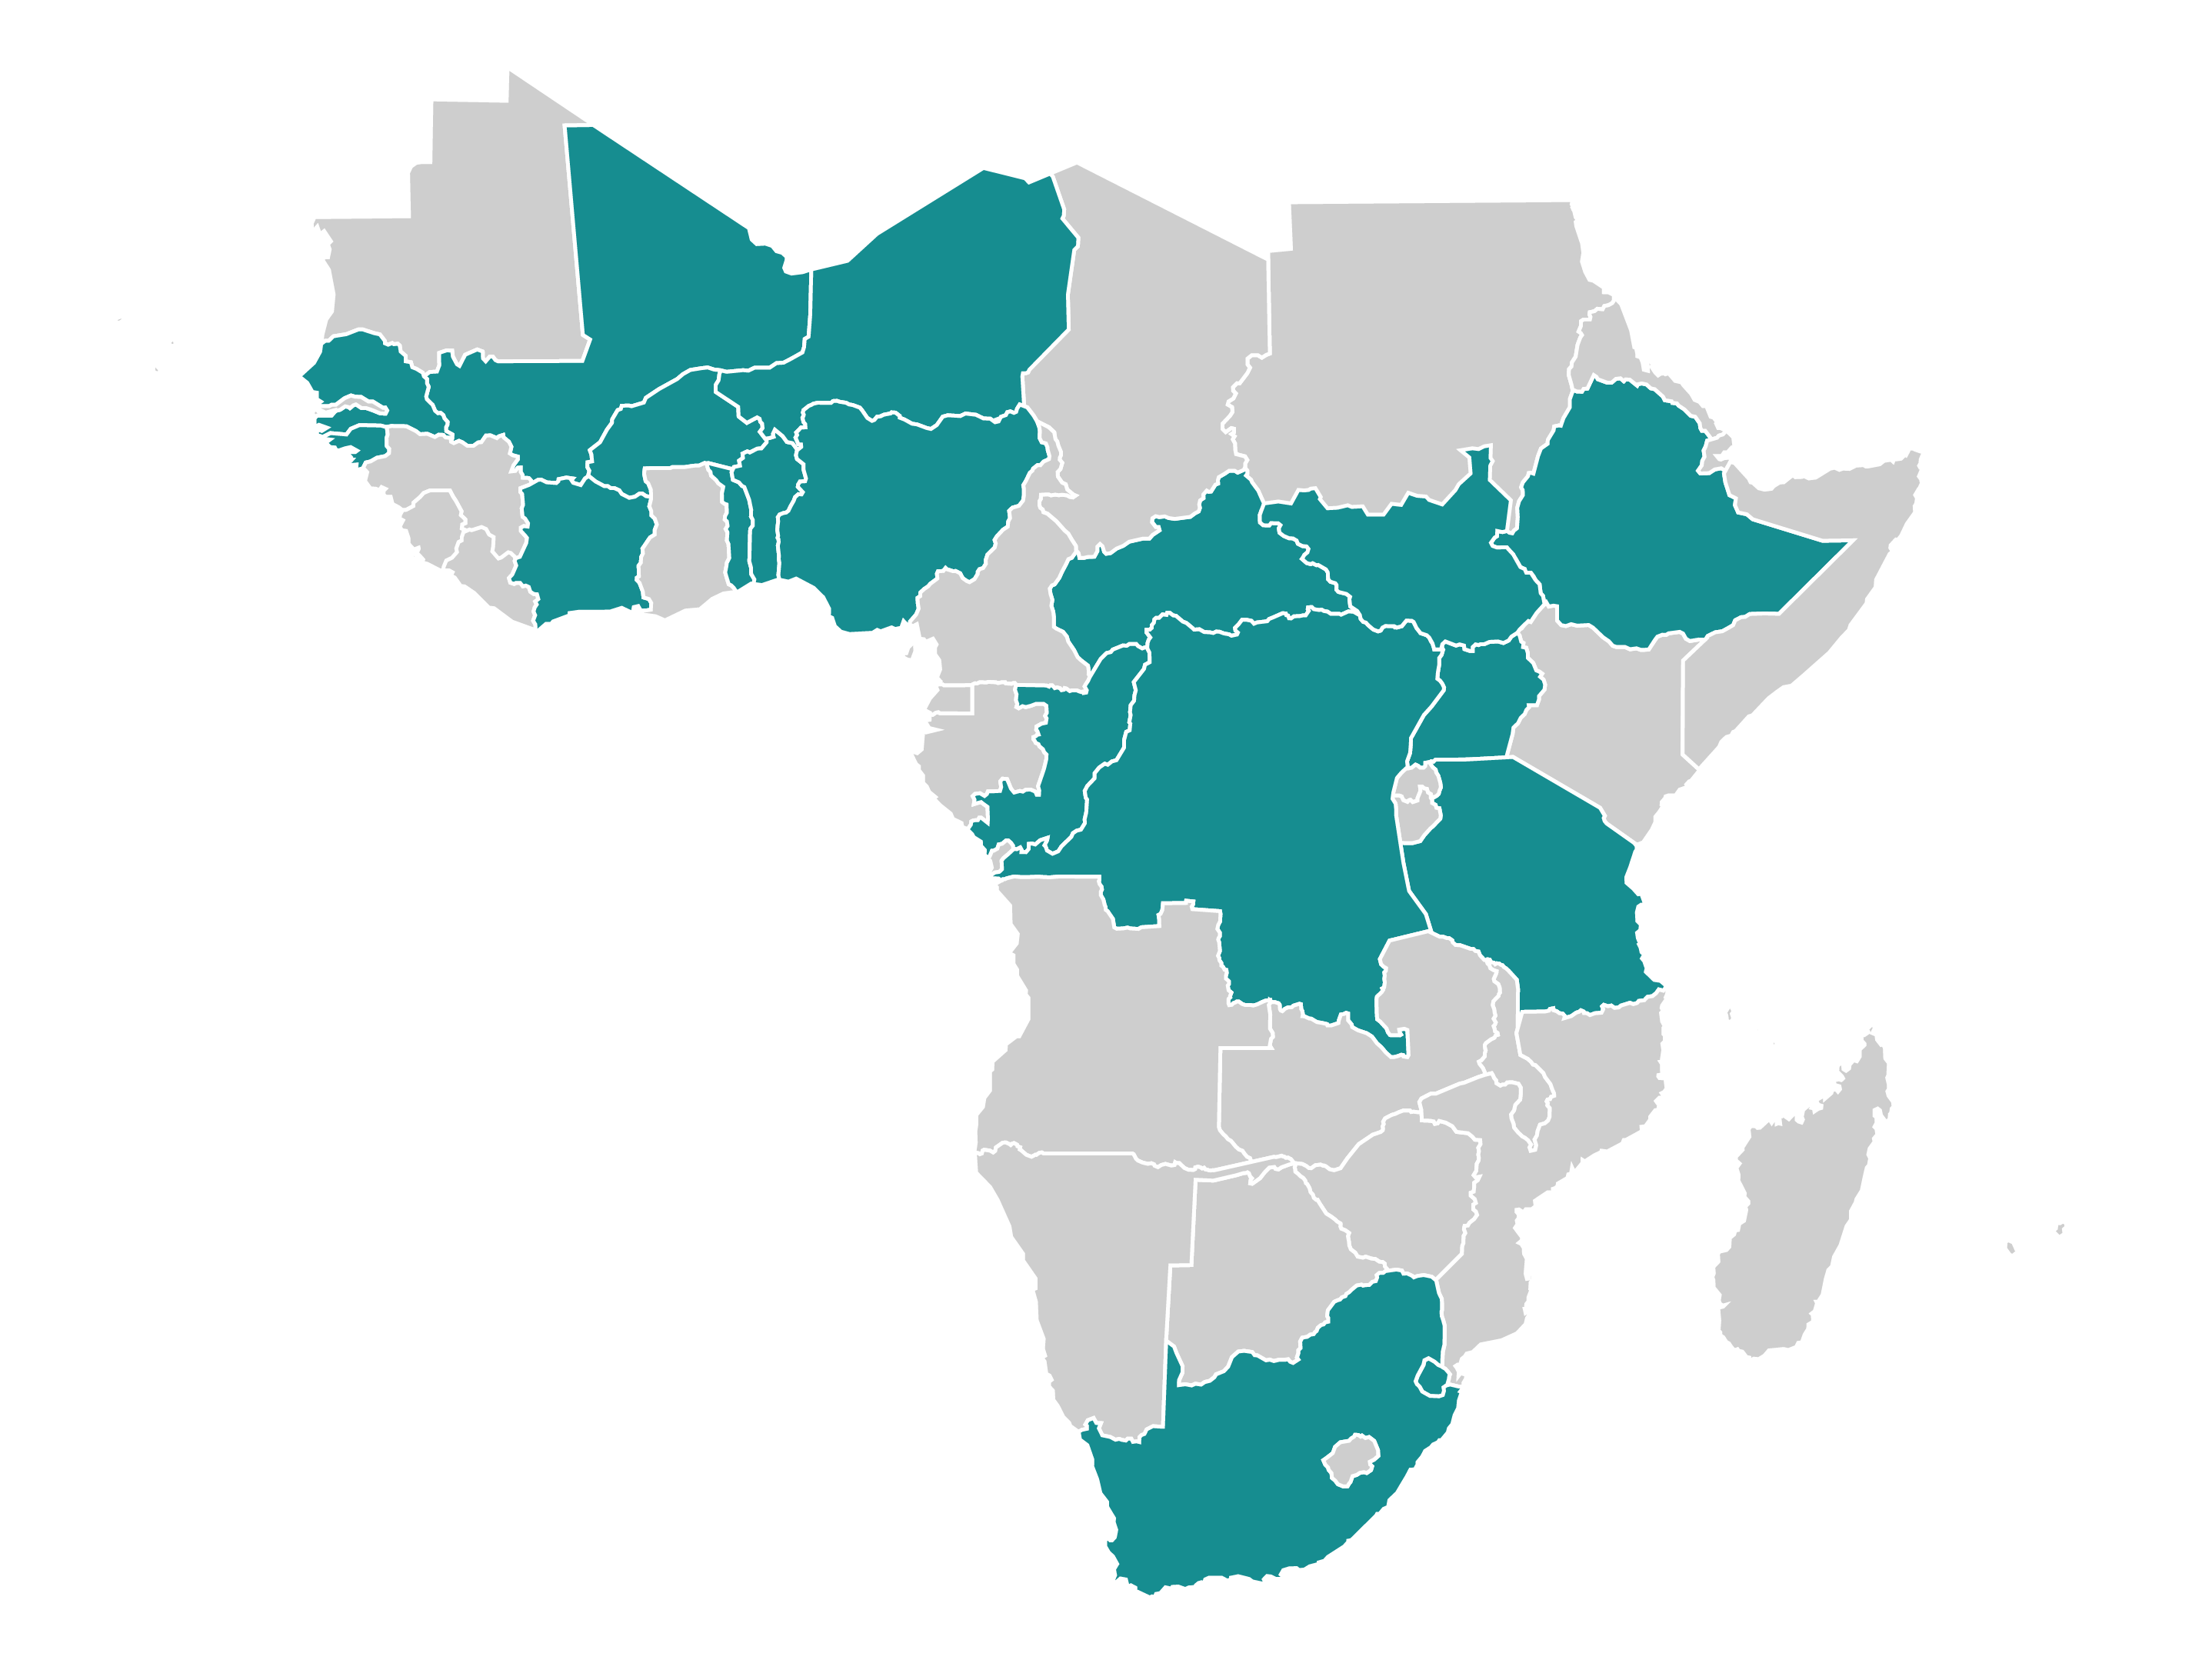 A map of Sub-Saharan Africa, with the following countries highlighted: Benin, Burkina Faso, Cote d'Ivoire, Central African Republic, Democratic Republic of the Congo, Ethiopia, Guinea-Bissau, Mali, Niger, Nigeria, Republic of Congo, Senegal, South Africa, South Sudan, Tanzania, Togo, and Uganda.